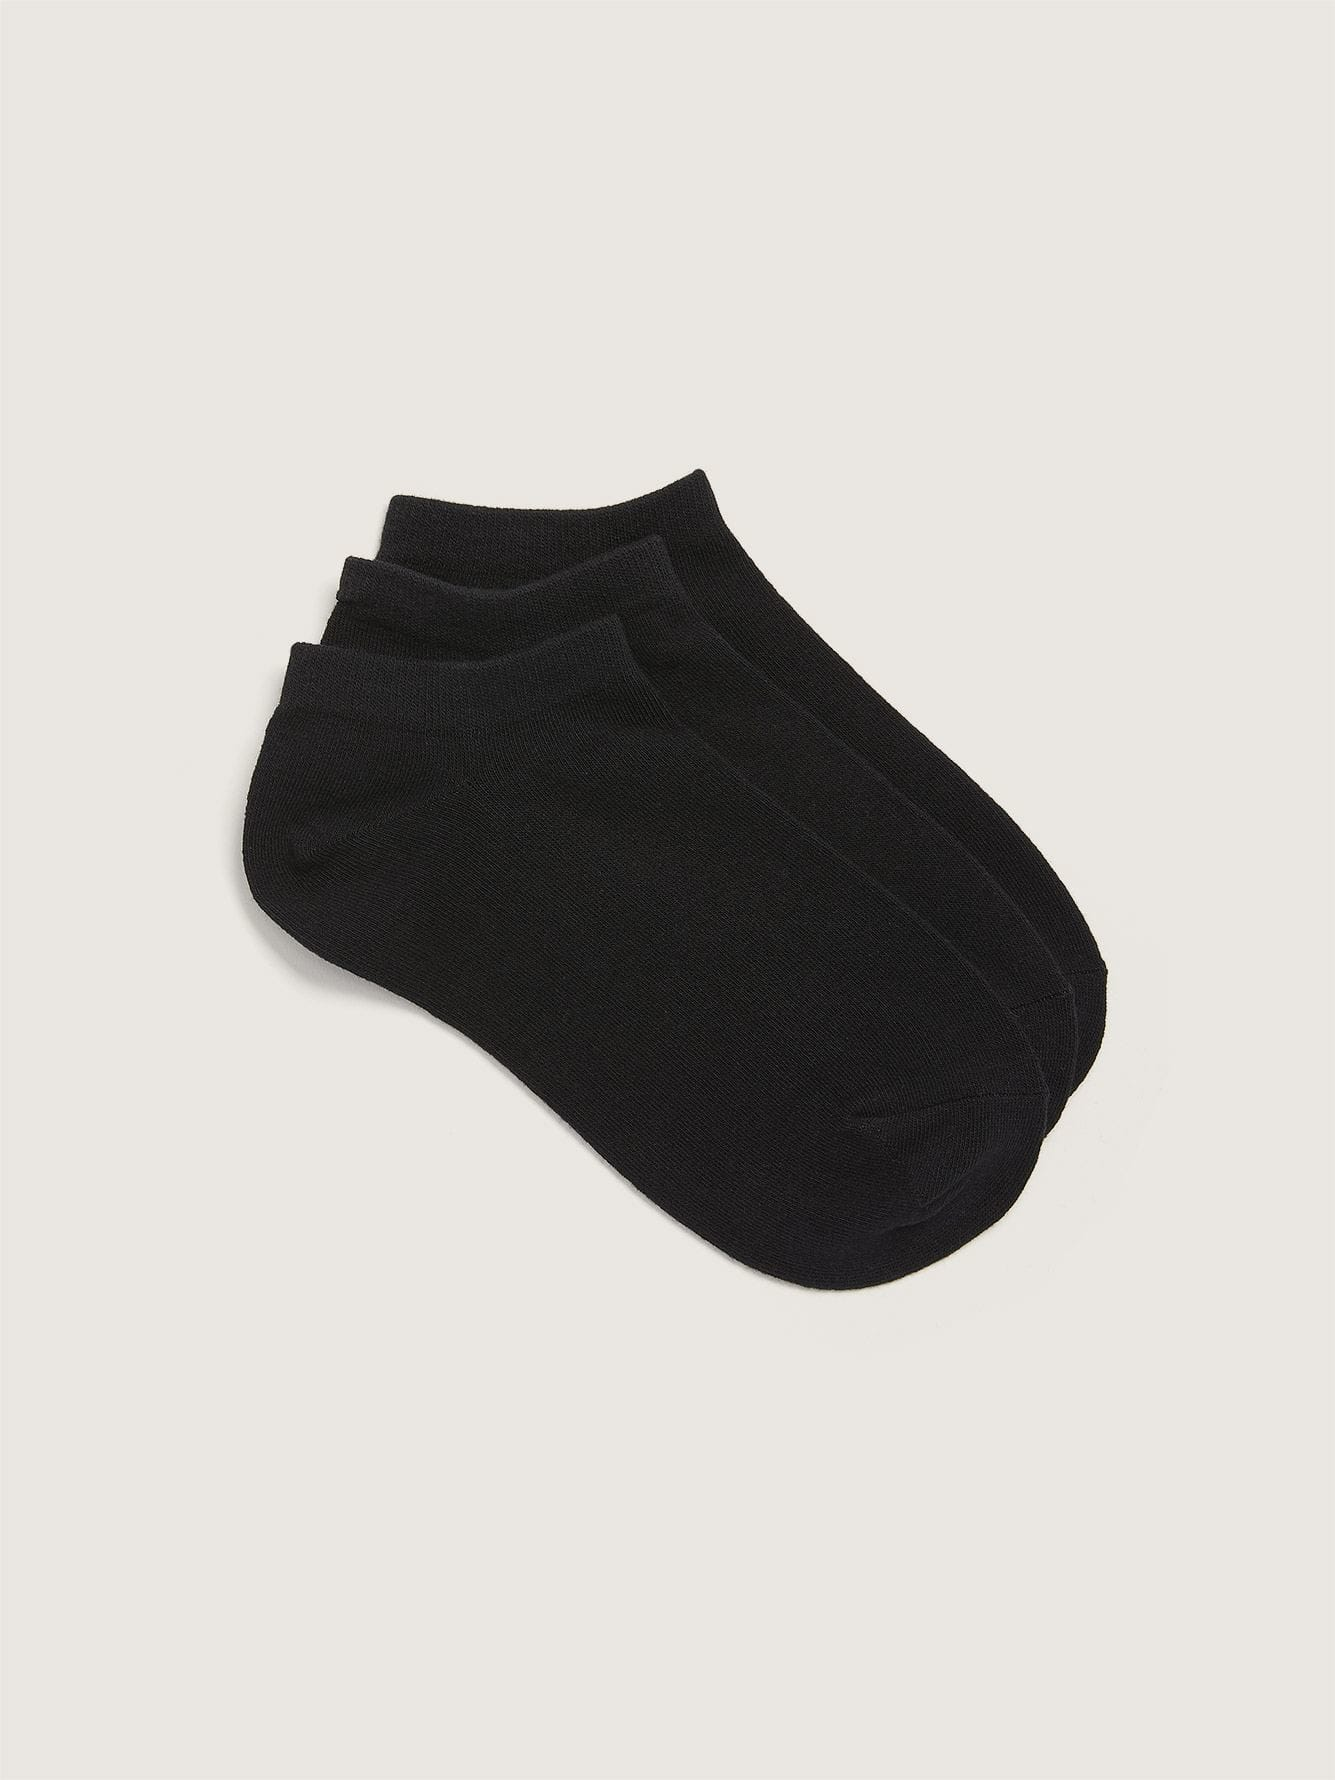 3 Pairs of Solid Ankle Socks